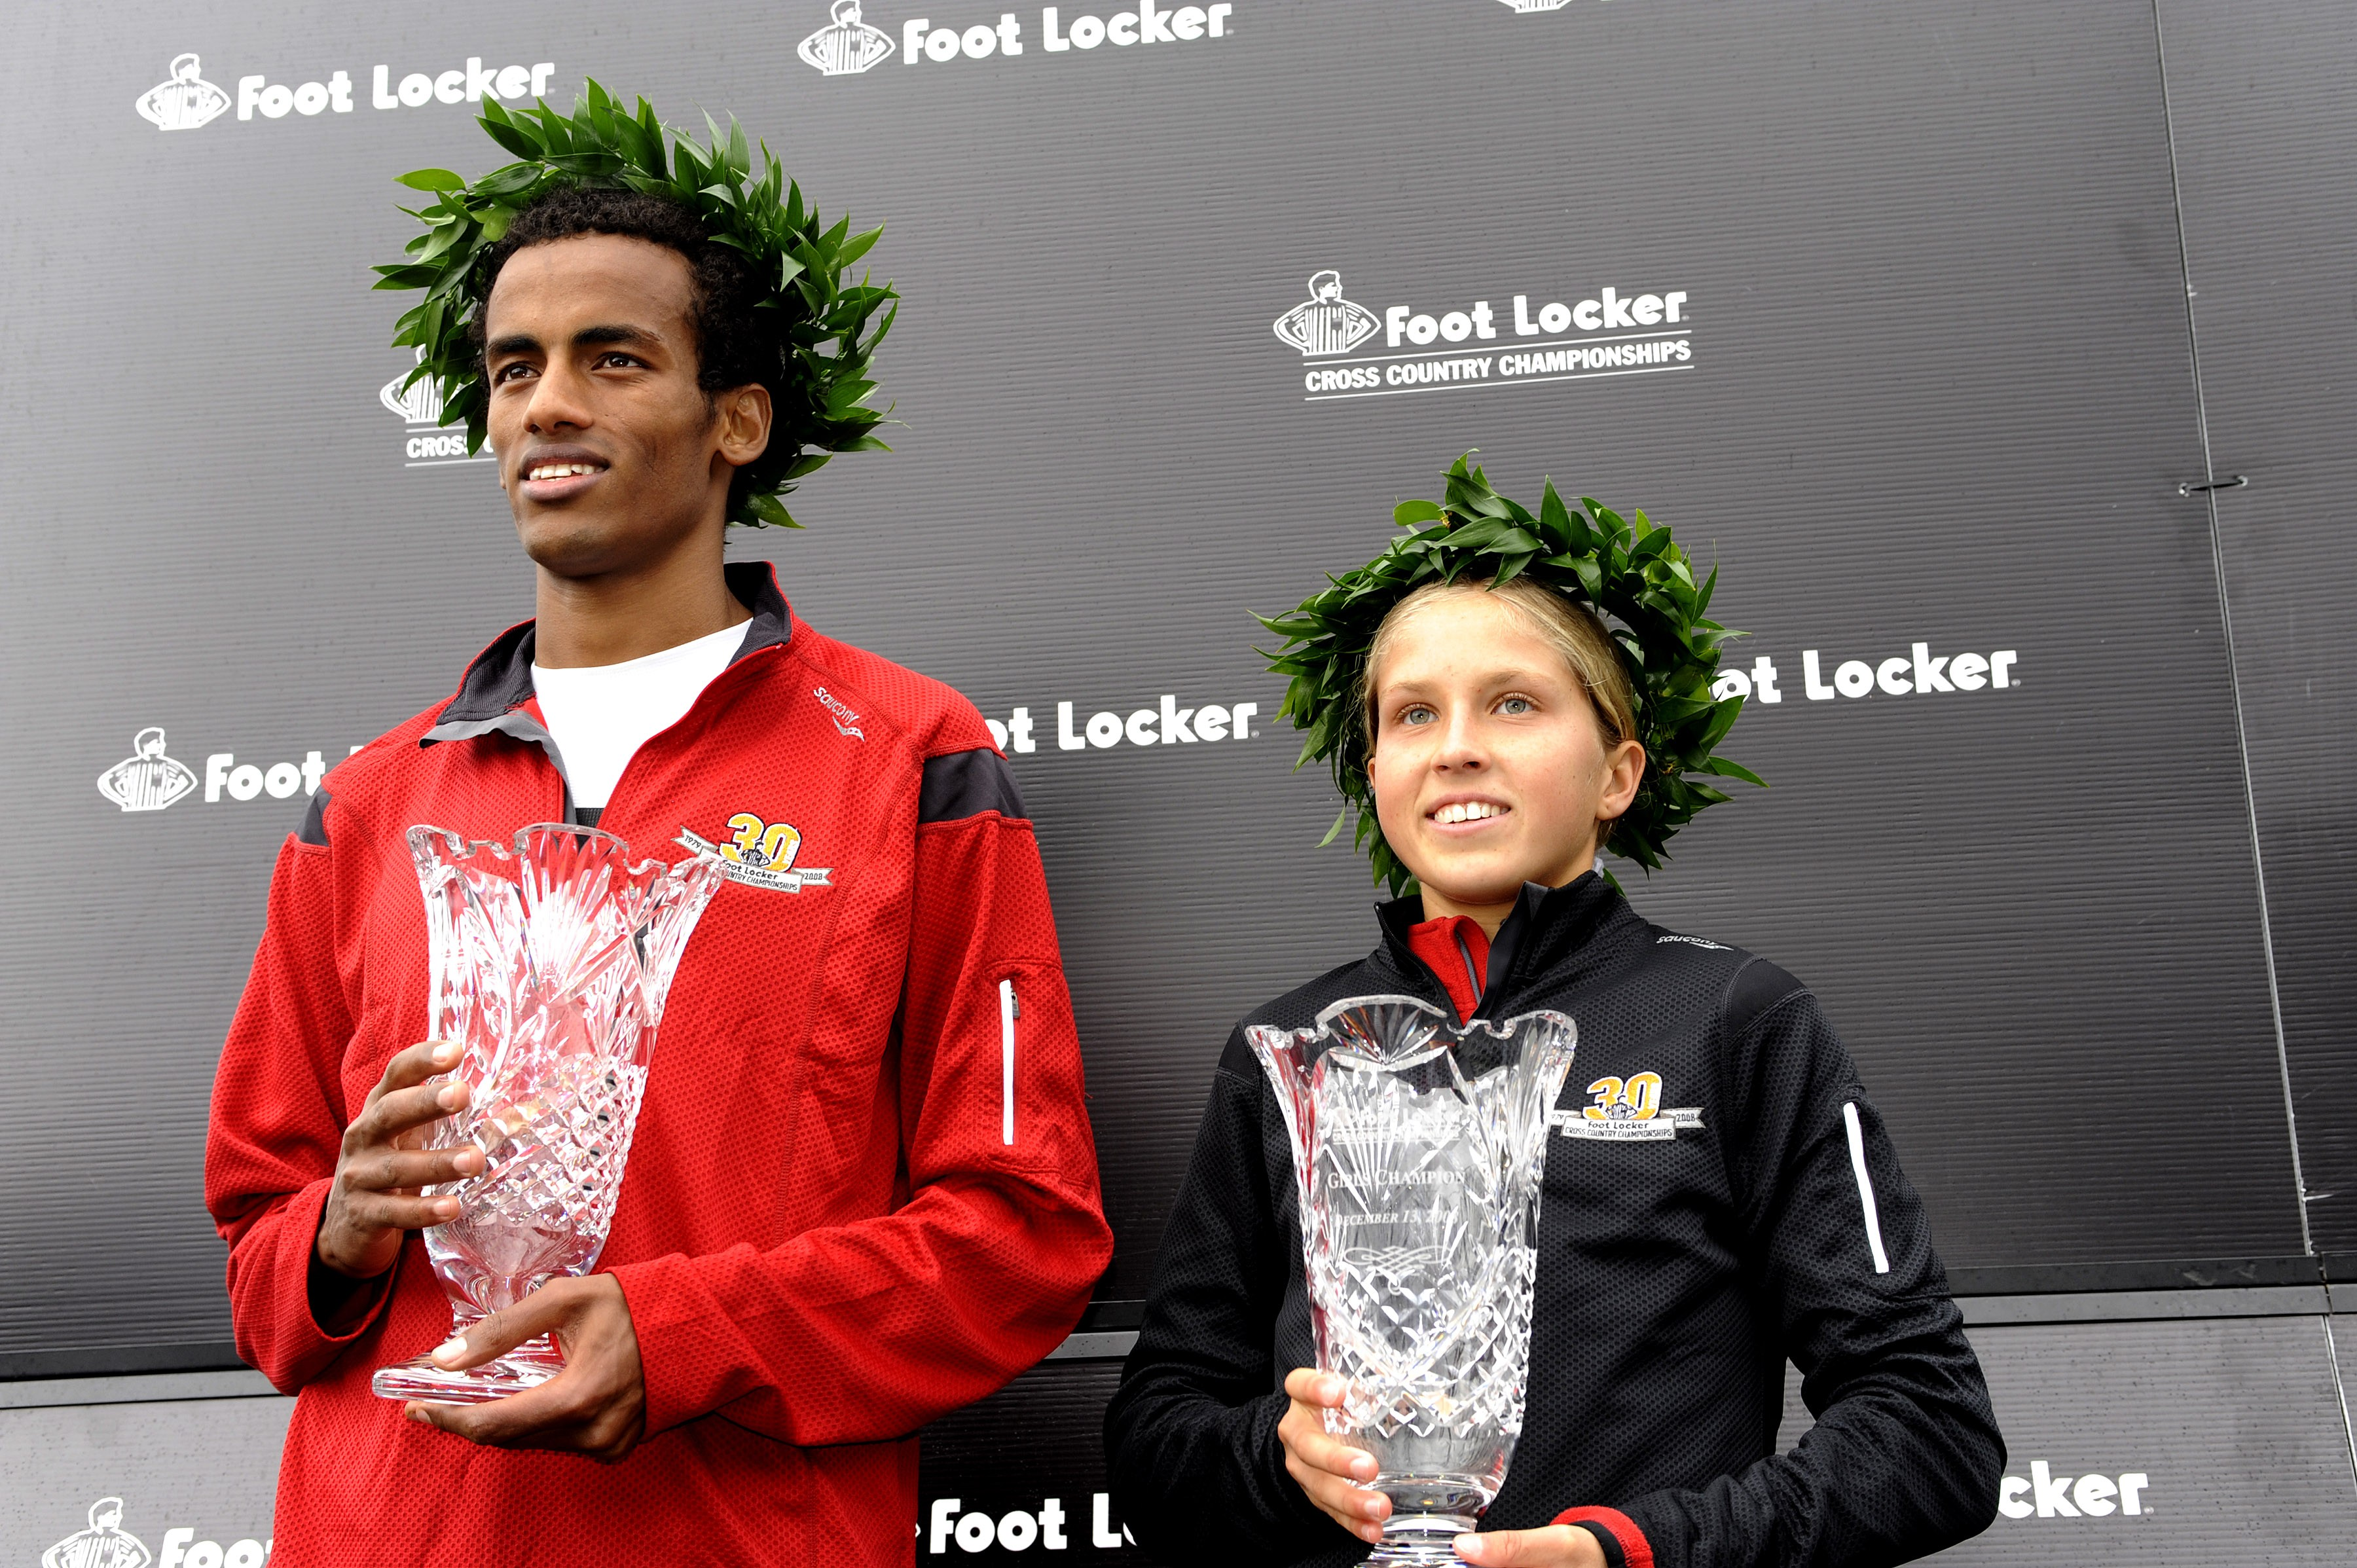 foot locker cross country championships 2008 foot locker blog throughout the 30 years flcc has been a stepping stone to greatness many olympians and professional athletes began their running career at the foot locker